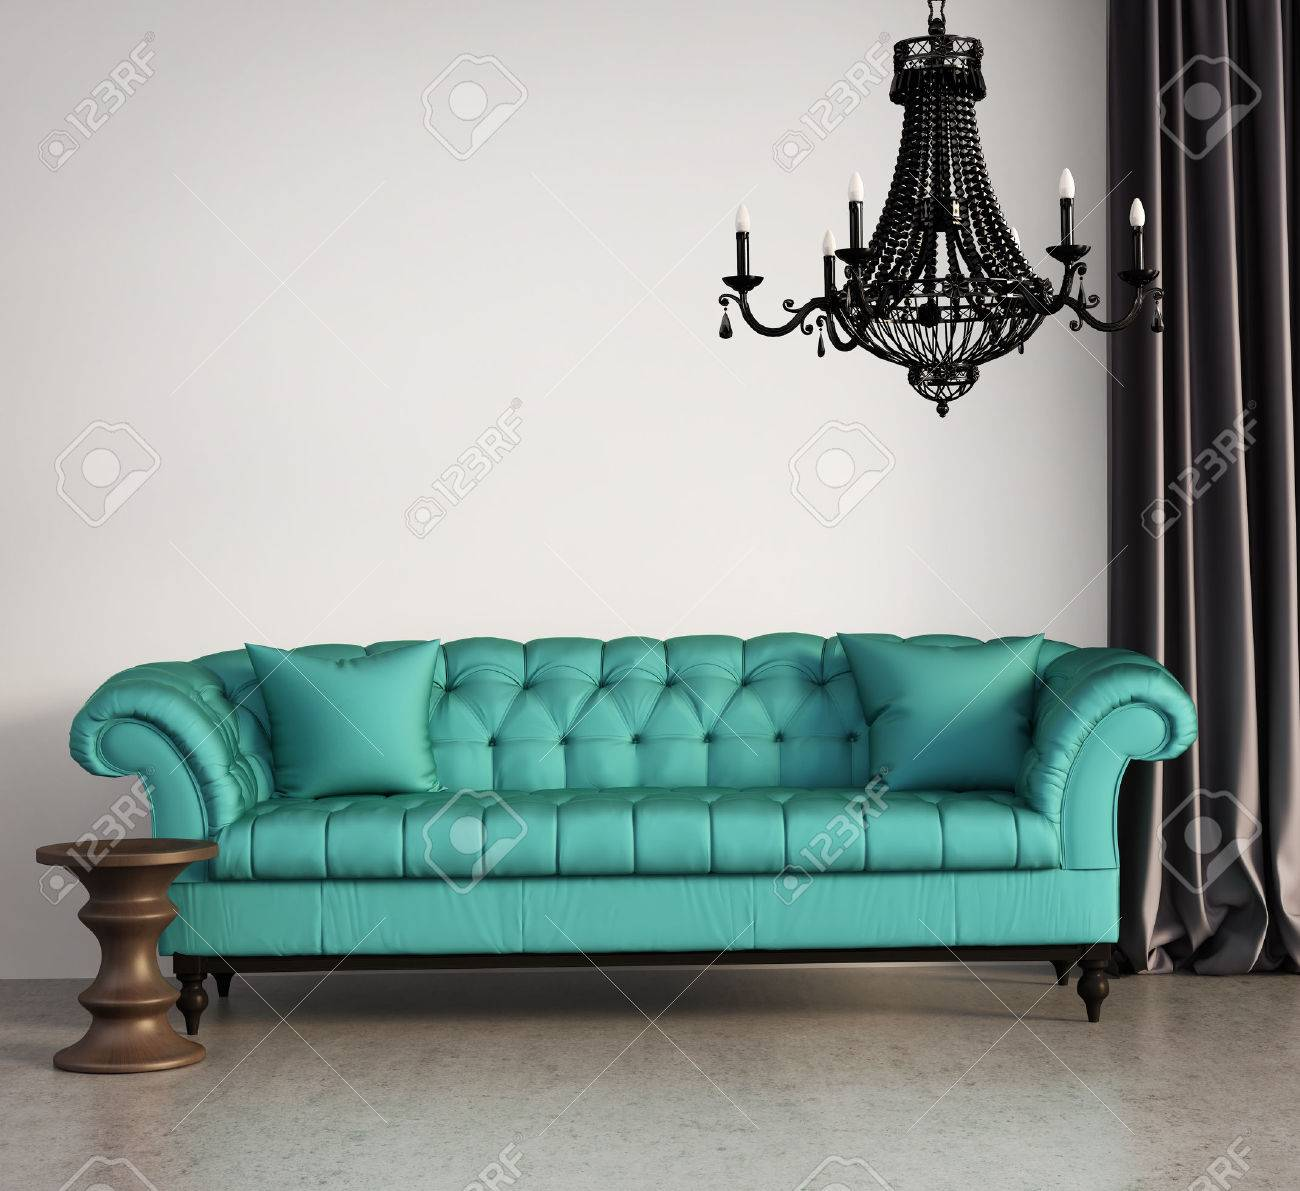 Vintage Classic Elegant Living Room With Green Sofa And Chandelier Stock  Photo   26650144 Part 73